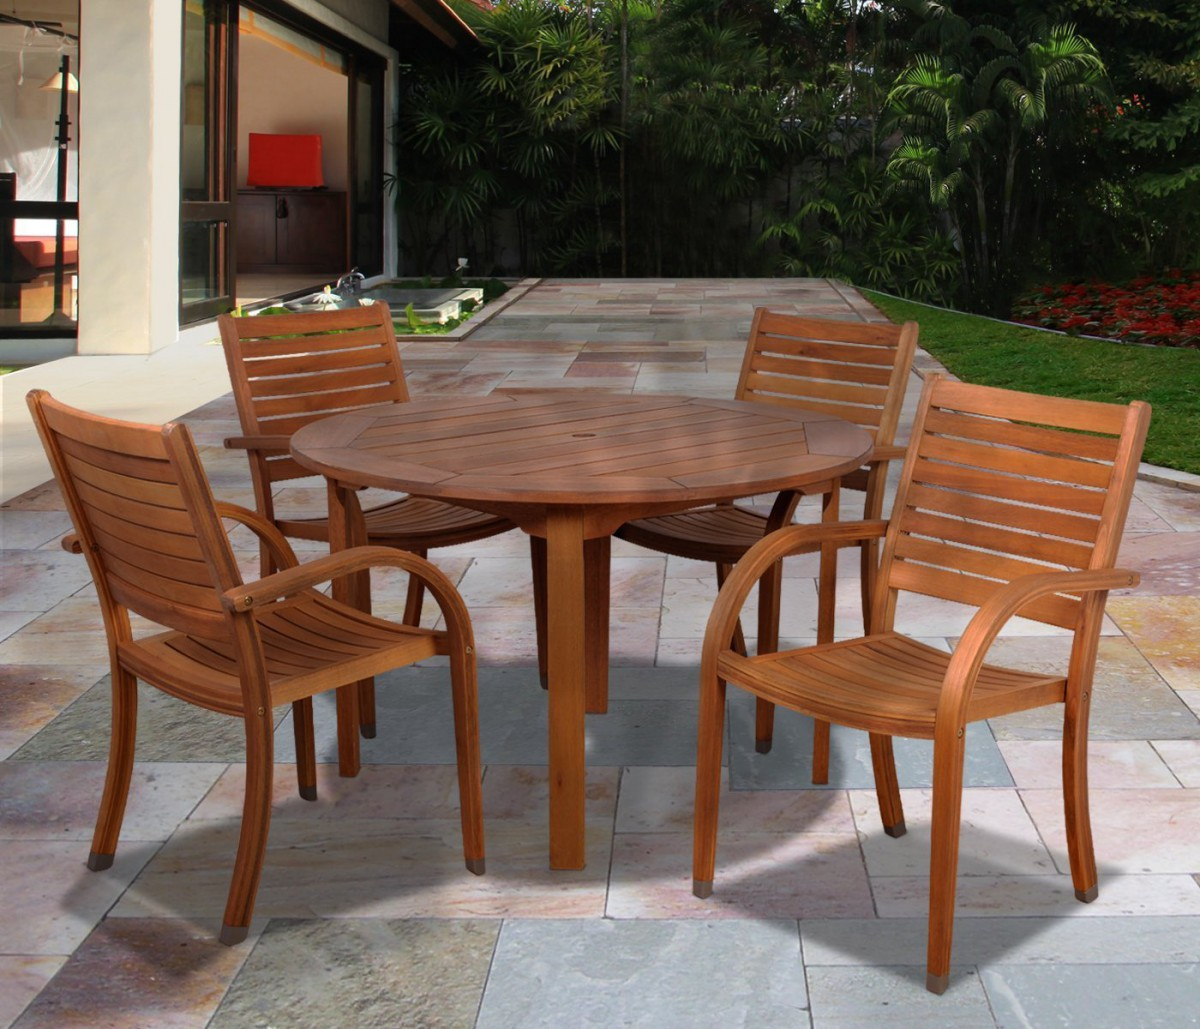 Amazonia arizona 5 piece wood outdoor dining set with 47 for Porch table and chair set